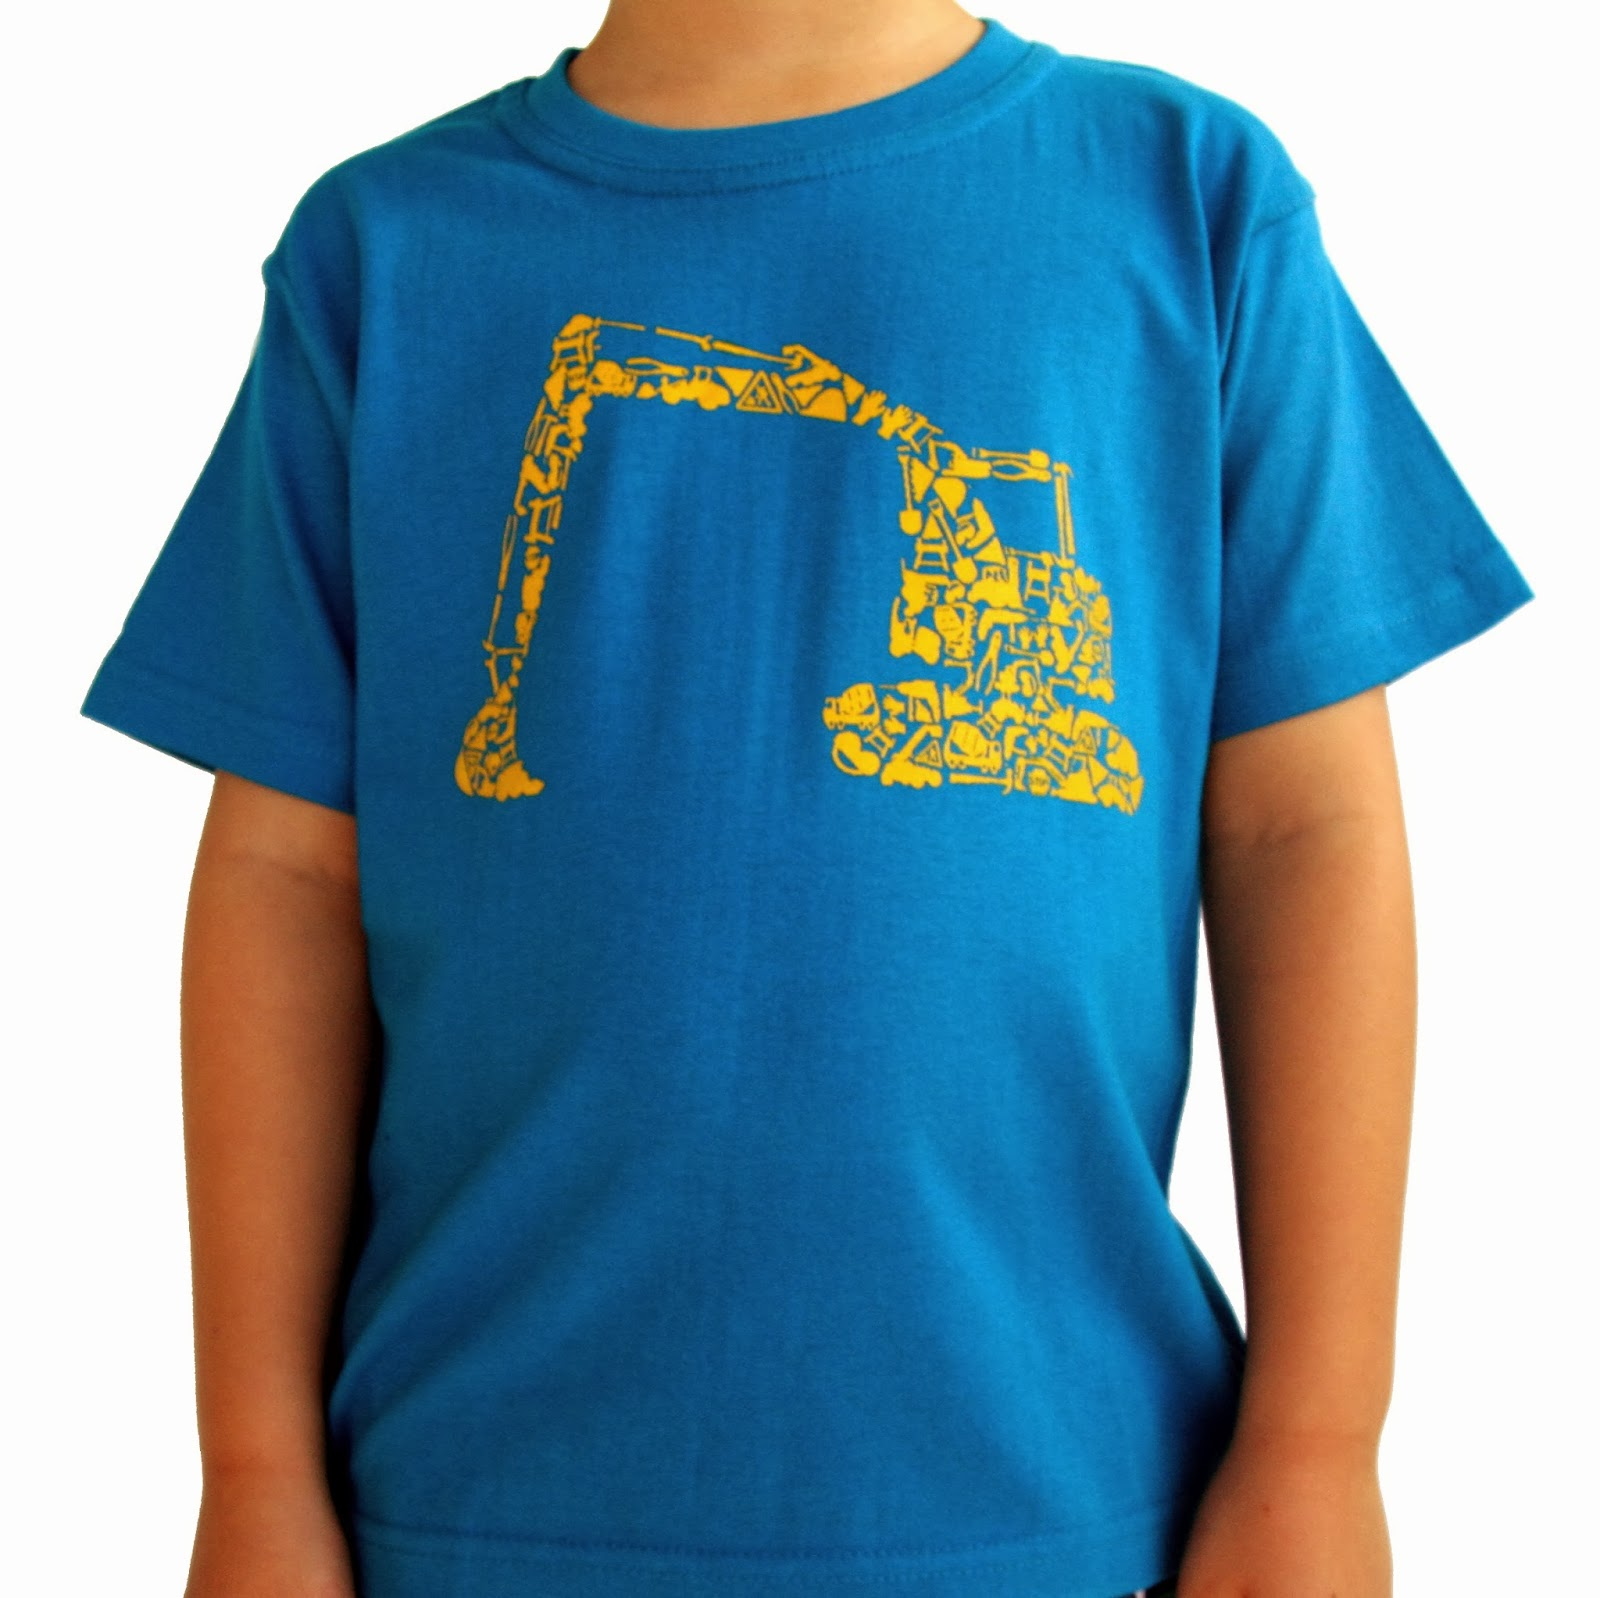 Mini Mayhem blue digger tshirt for boys construction roadworks excavator